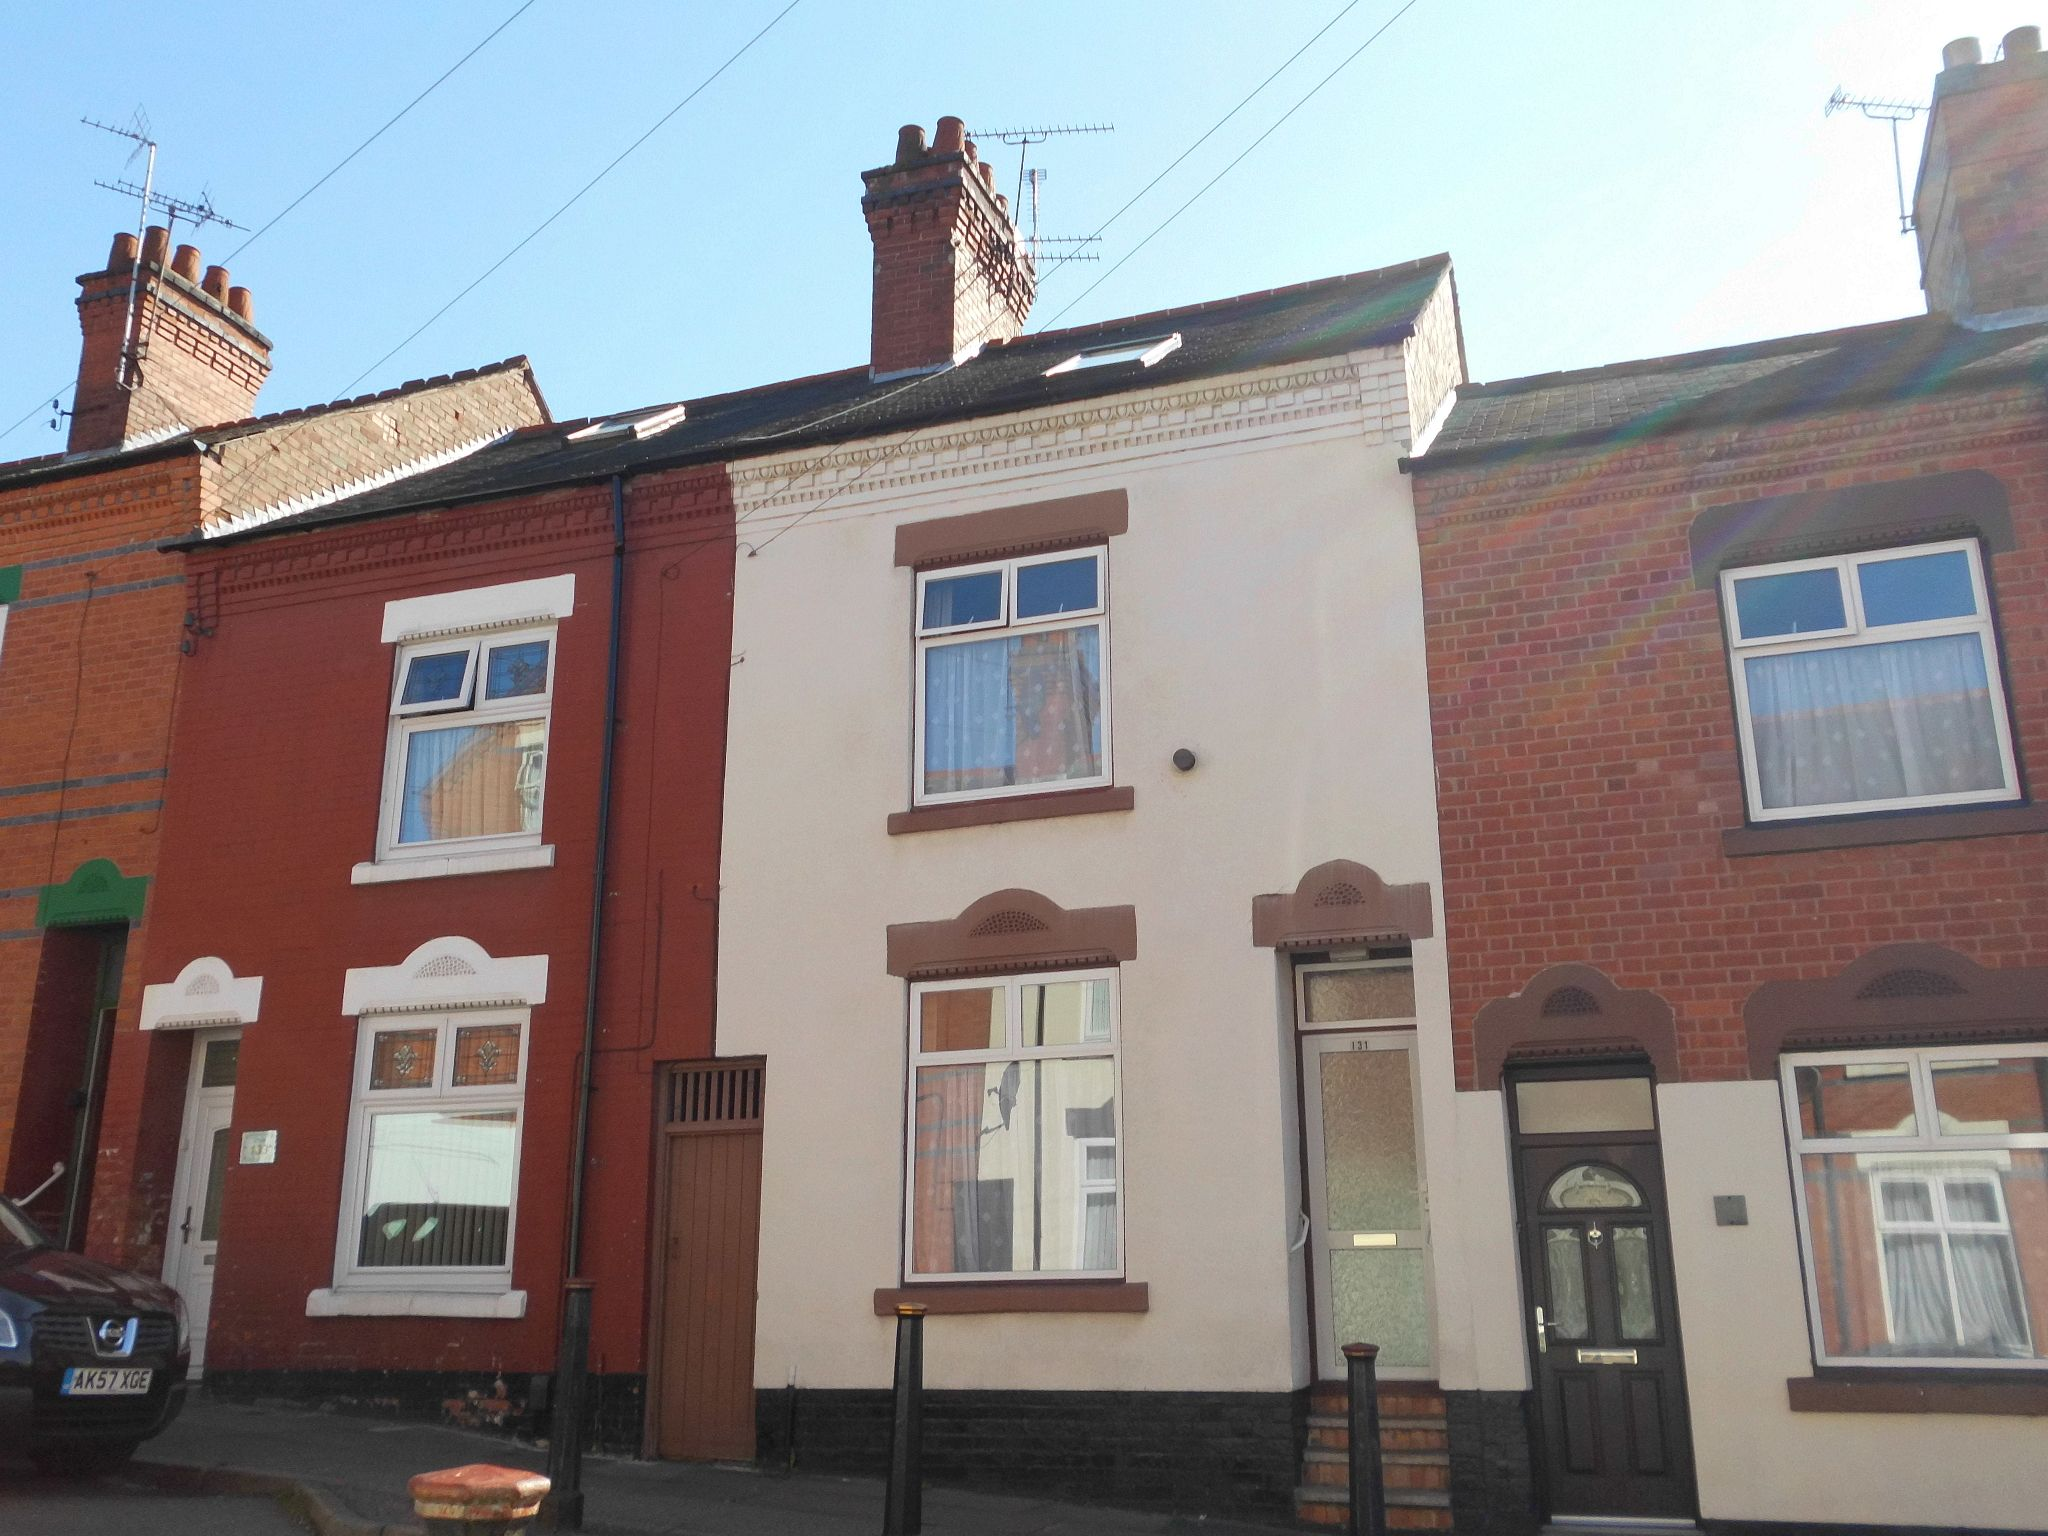 4 bedroom mid terraced house For Sale in Leicester - Photograph 1.